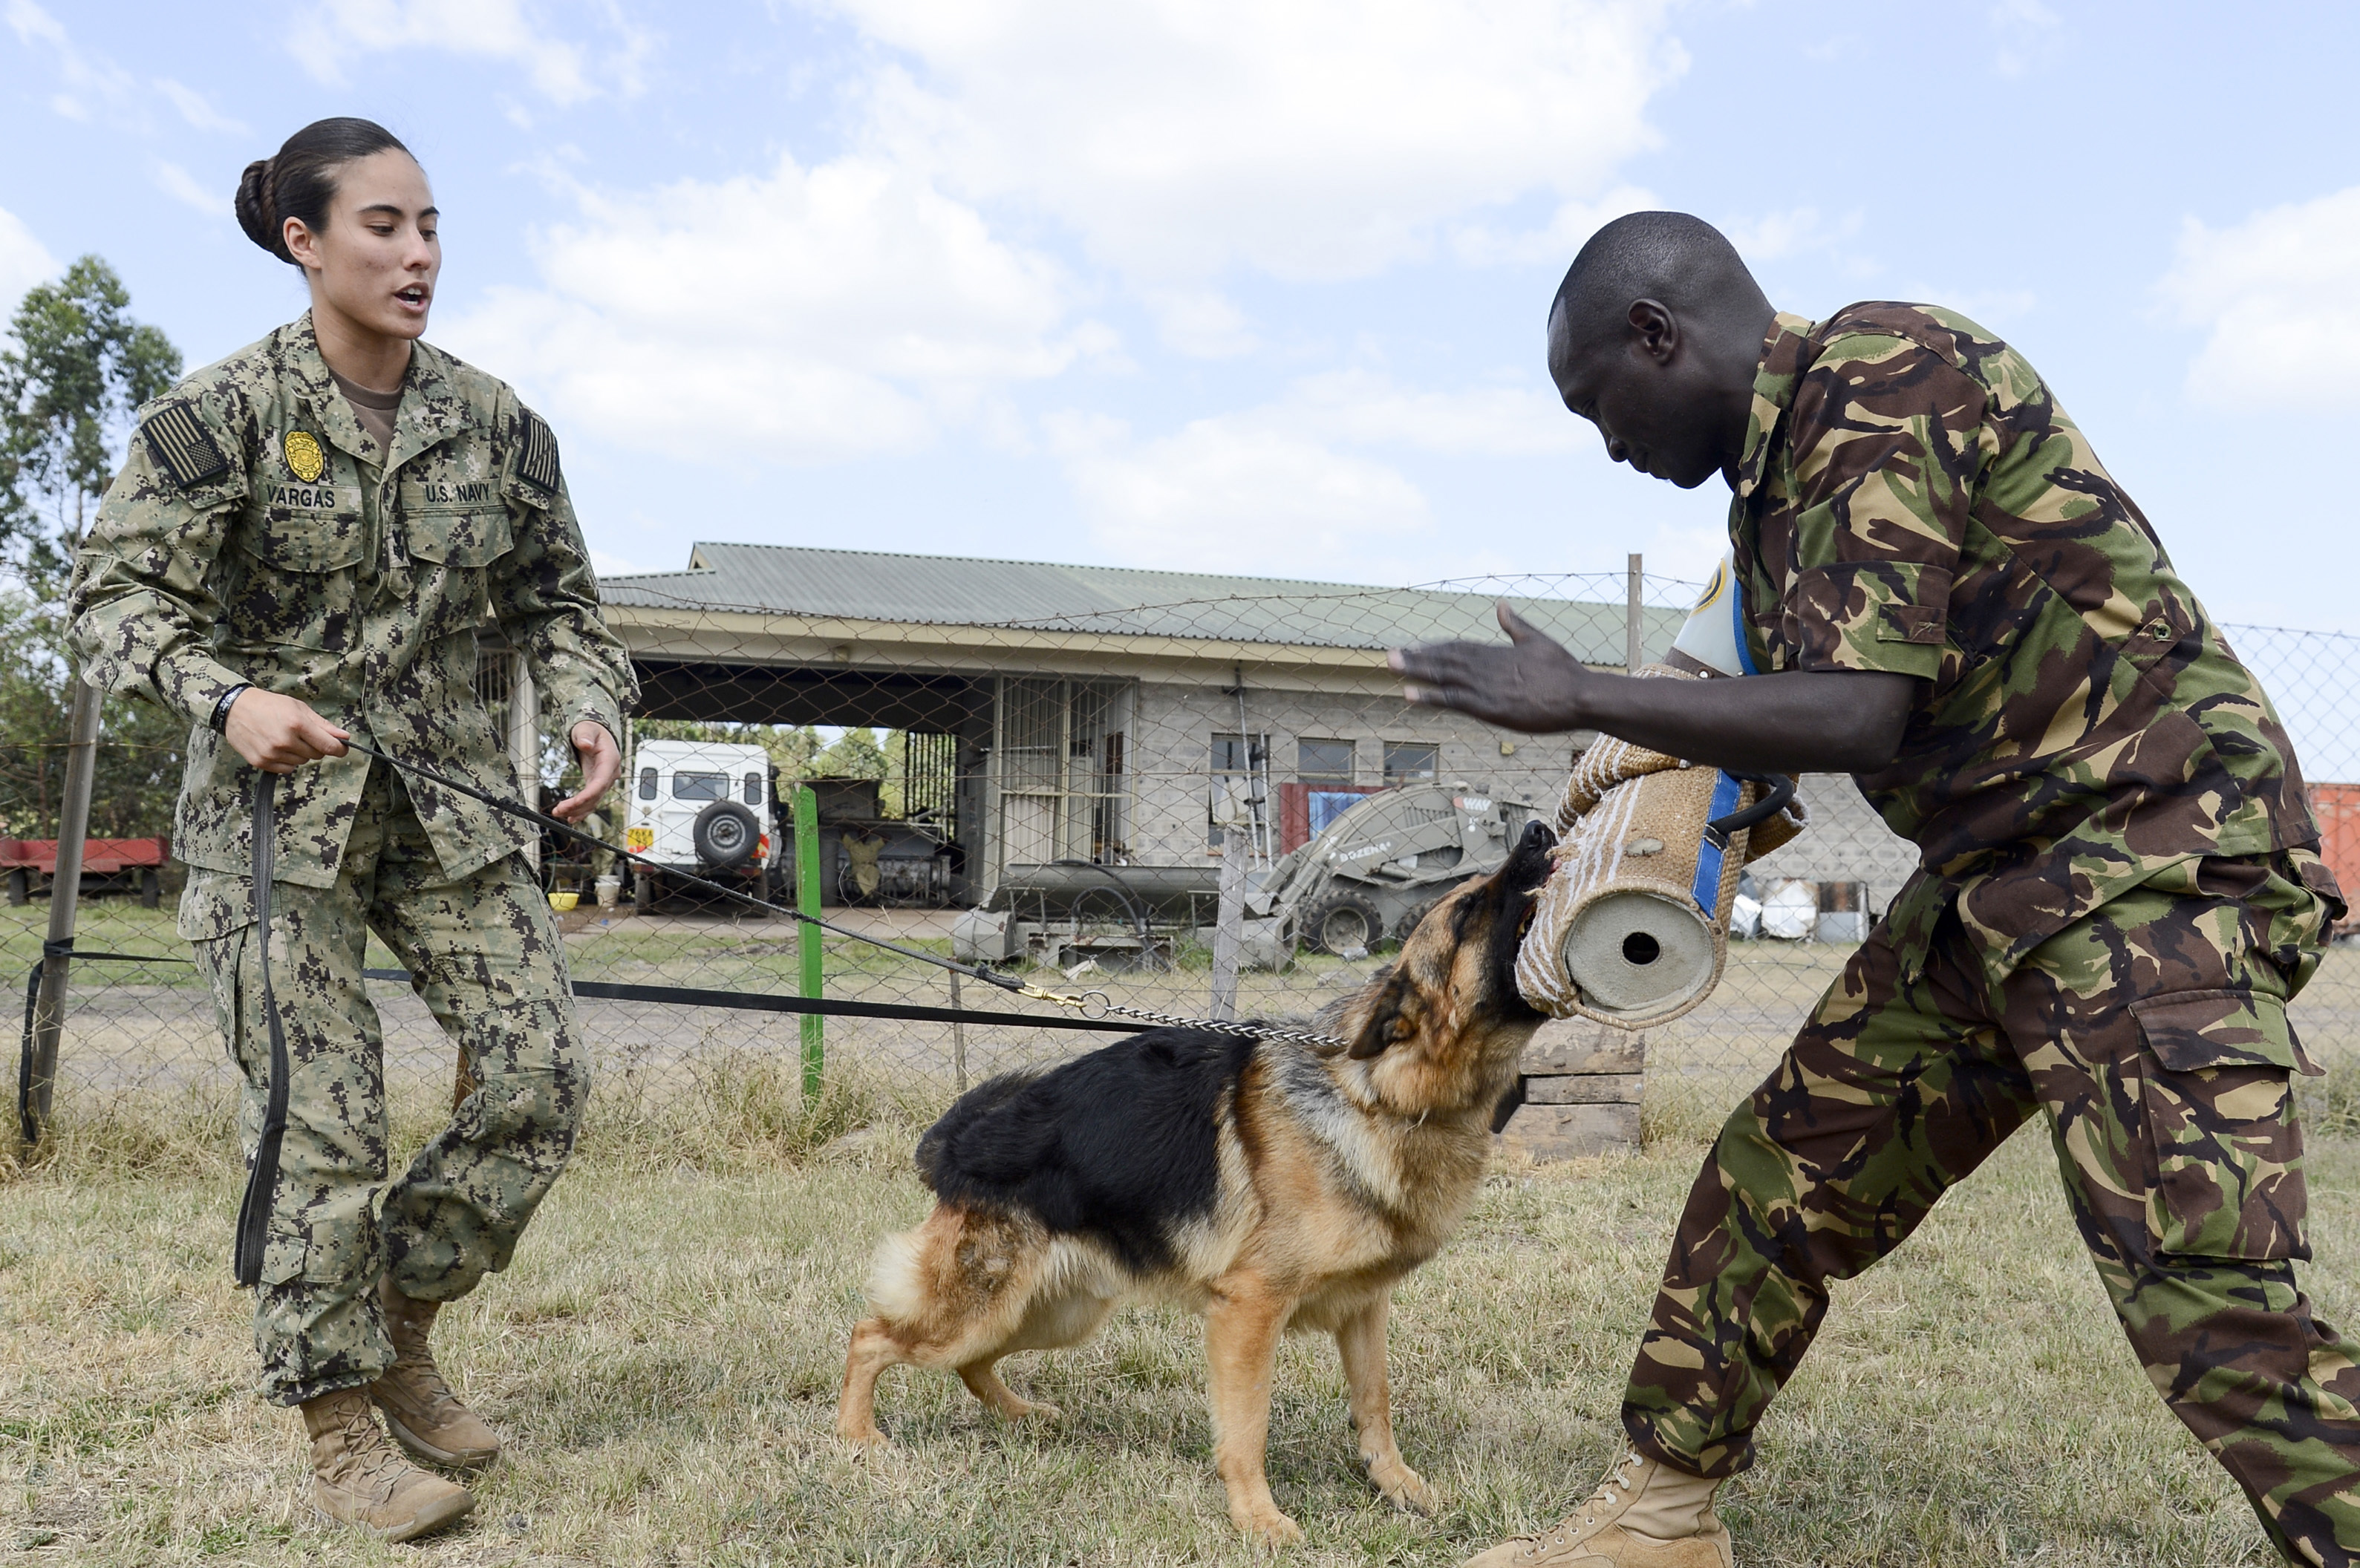 Master at Arms 1st Class Kristina Vargas, the Kennel Master assigned to Camp Lemonnier and Kenya Army Cpl. Junior Kimani, 1st Canine Regiment, Kenya Defense Force, conduct controlled aggression training during a Military Working Dog knowledge exchange, in Nairobi, Kenya, August 7, 2018. The exchange gave a chance for American and Kenyan forces to learn and work with each other to have a better understanding of each other's capabilities. (U.S. Navy Photo by Mass Communication Specialist 2nd Class Timothy M. Ahearn)